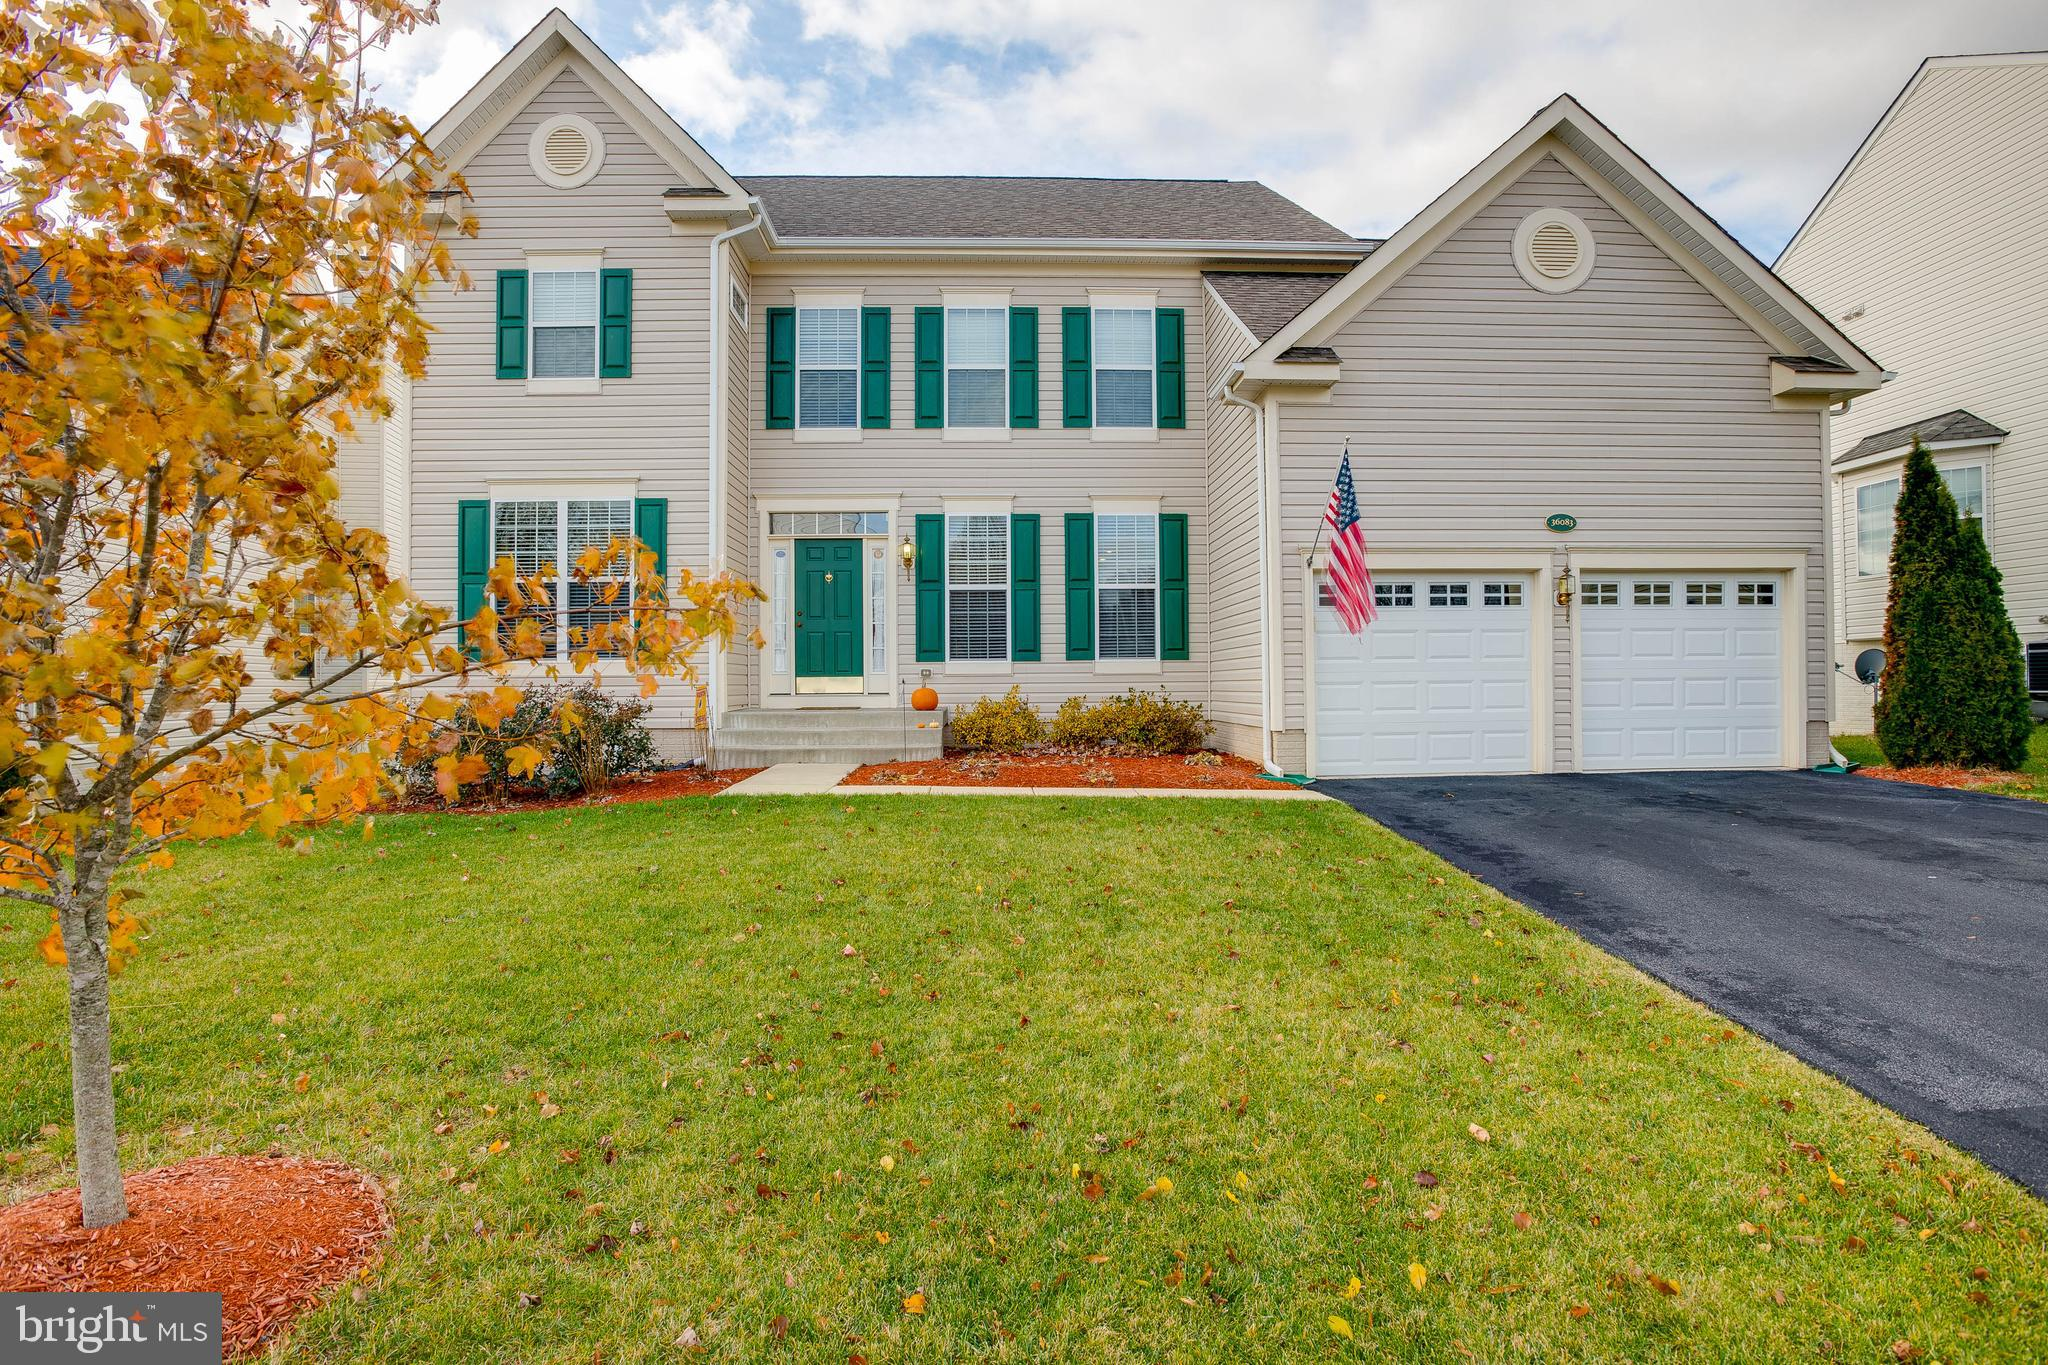 This beautiful home offers casual sophisticated living in Round Hill with over 2500 sq ft, 4 bedroom